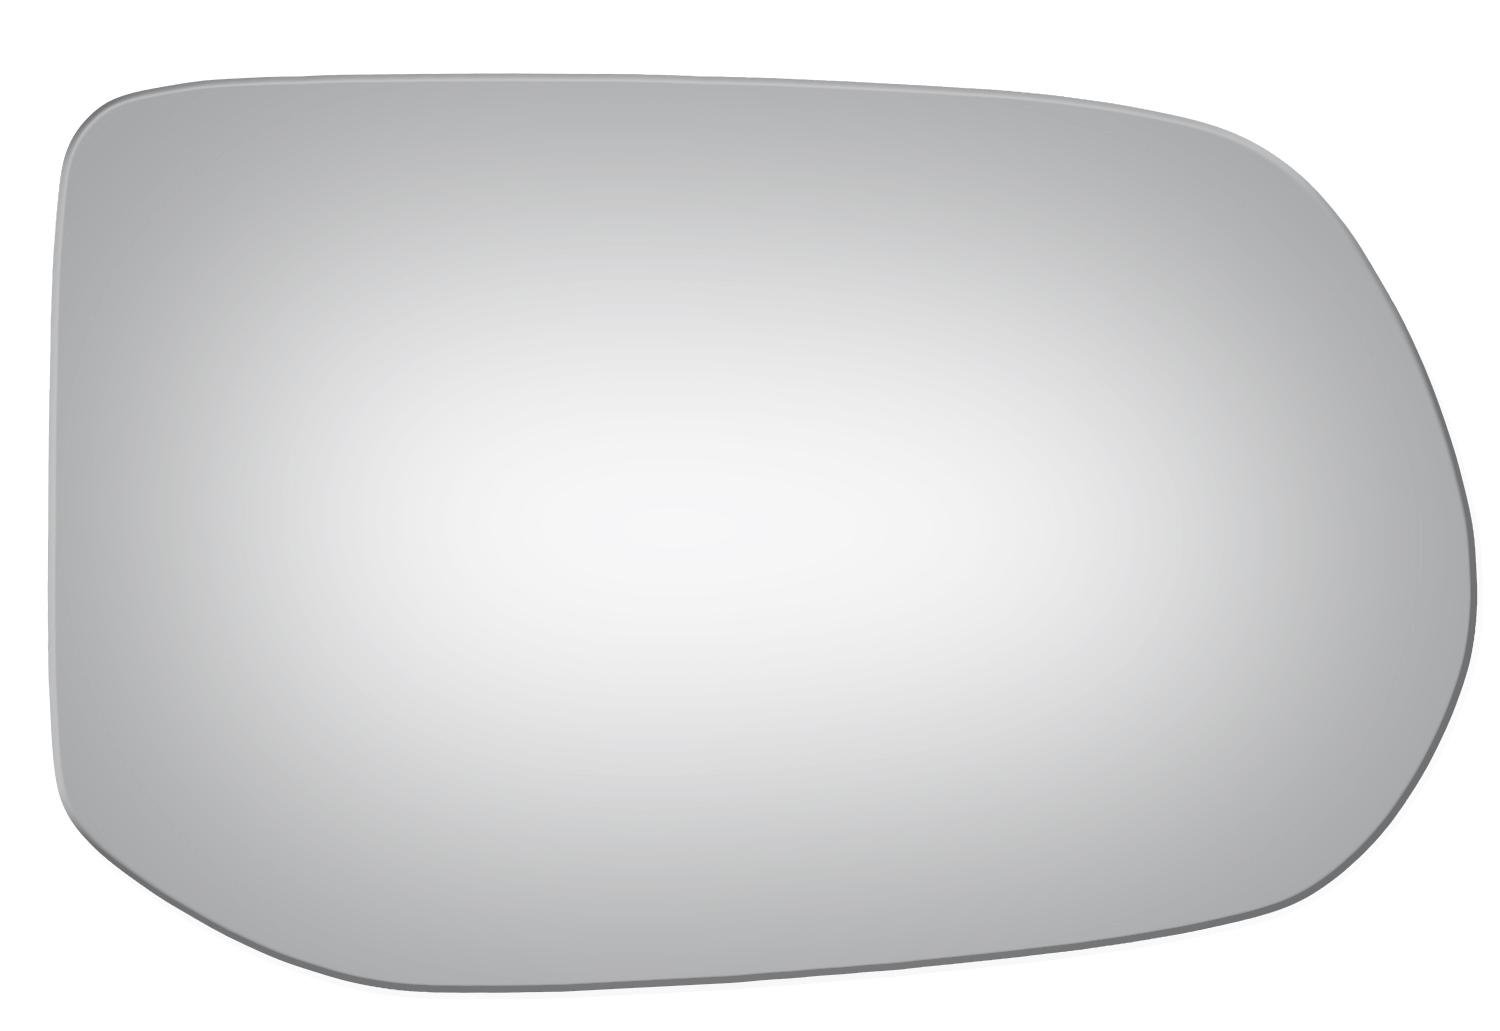 2006 2007 2008 2009 2010 2011 Burco 5173 Convex Right Passenger Side Mirror Glass w//o Backing Plate for Honda Civic 4 Door Only, Excluding Hybrid